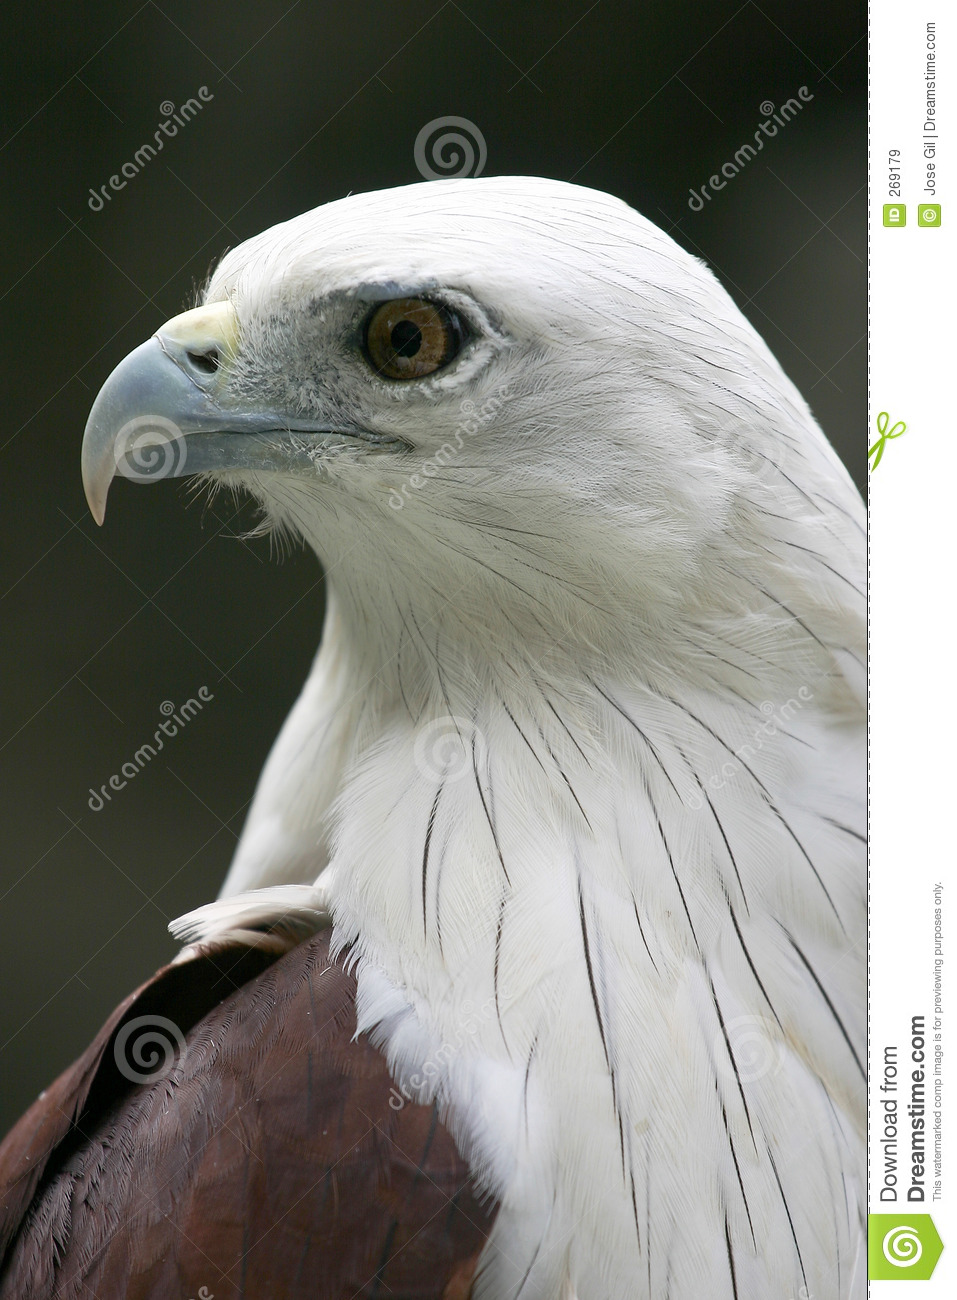 White-bellied Sea Eagle clipart #19, Download drawings